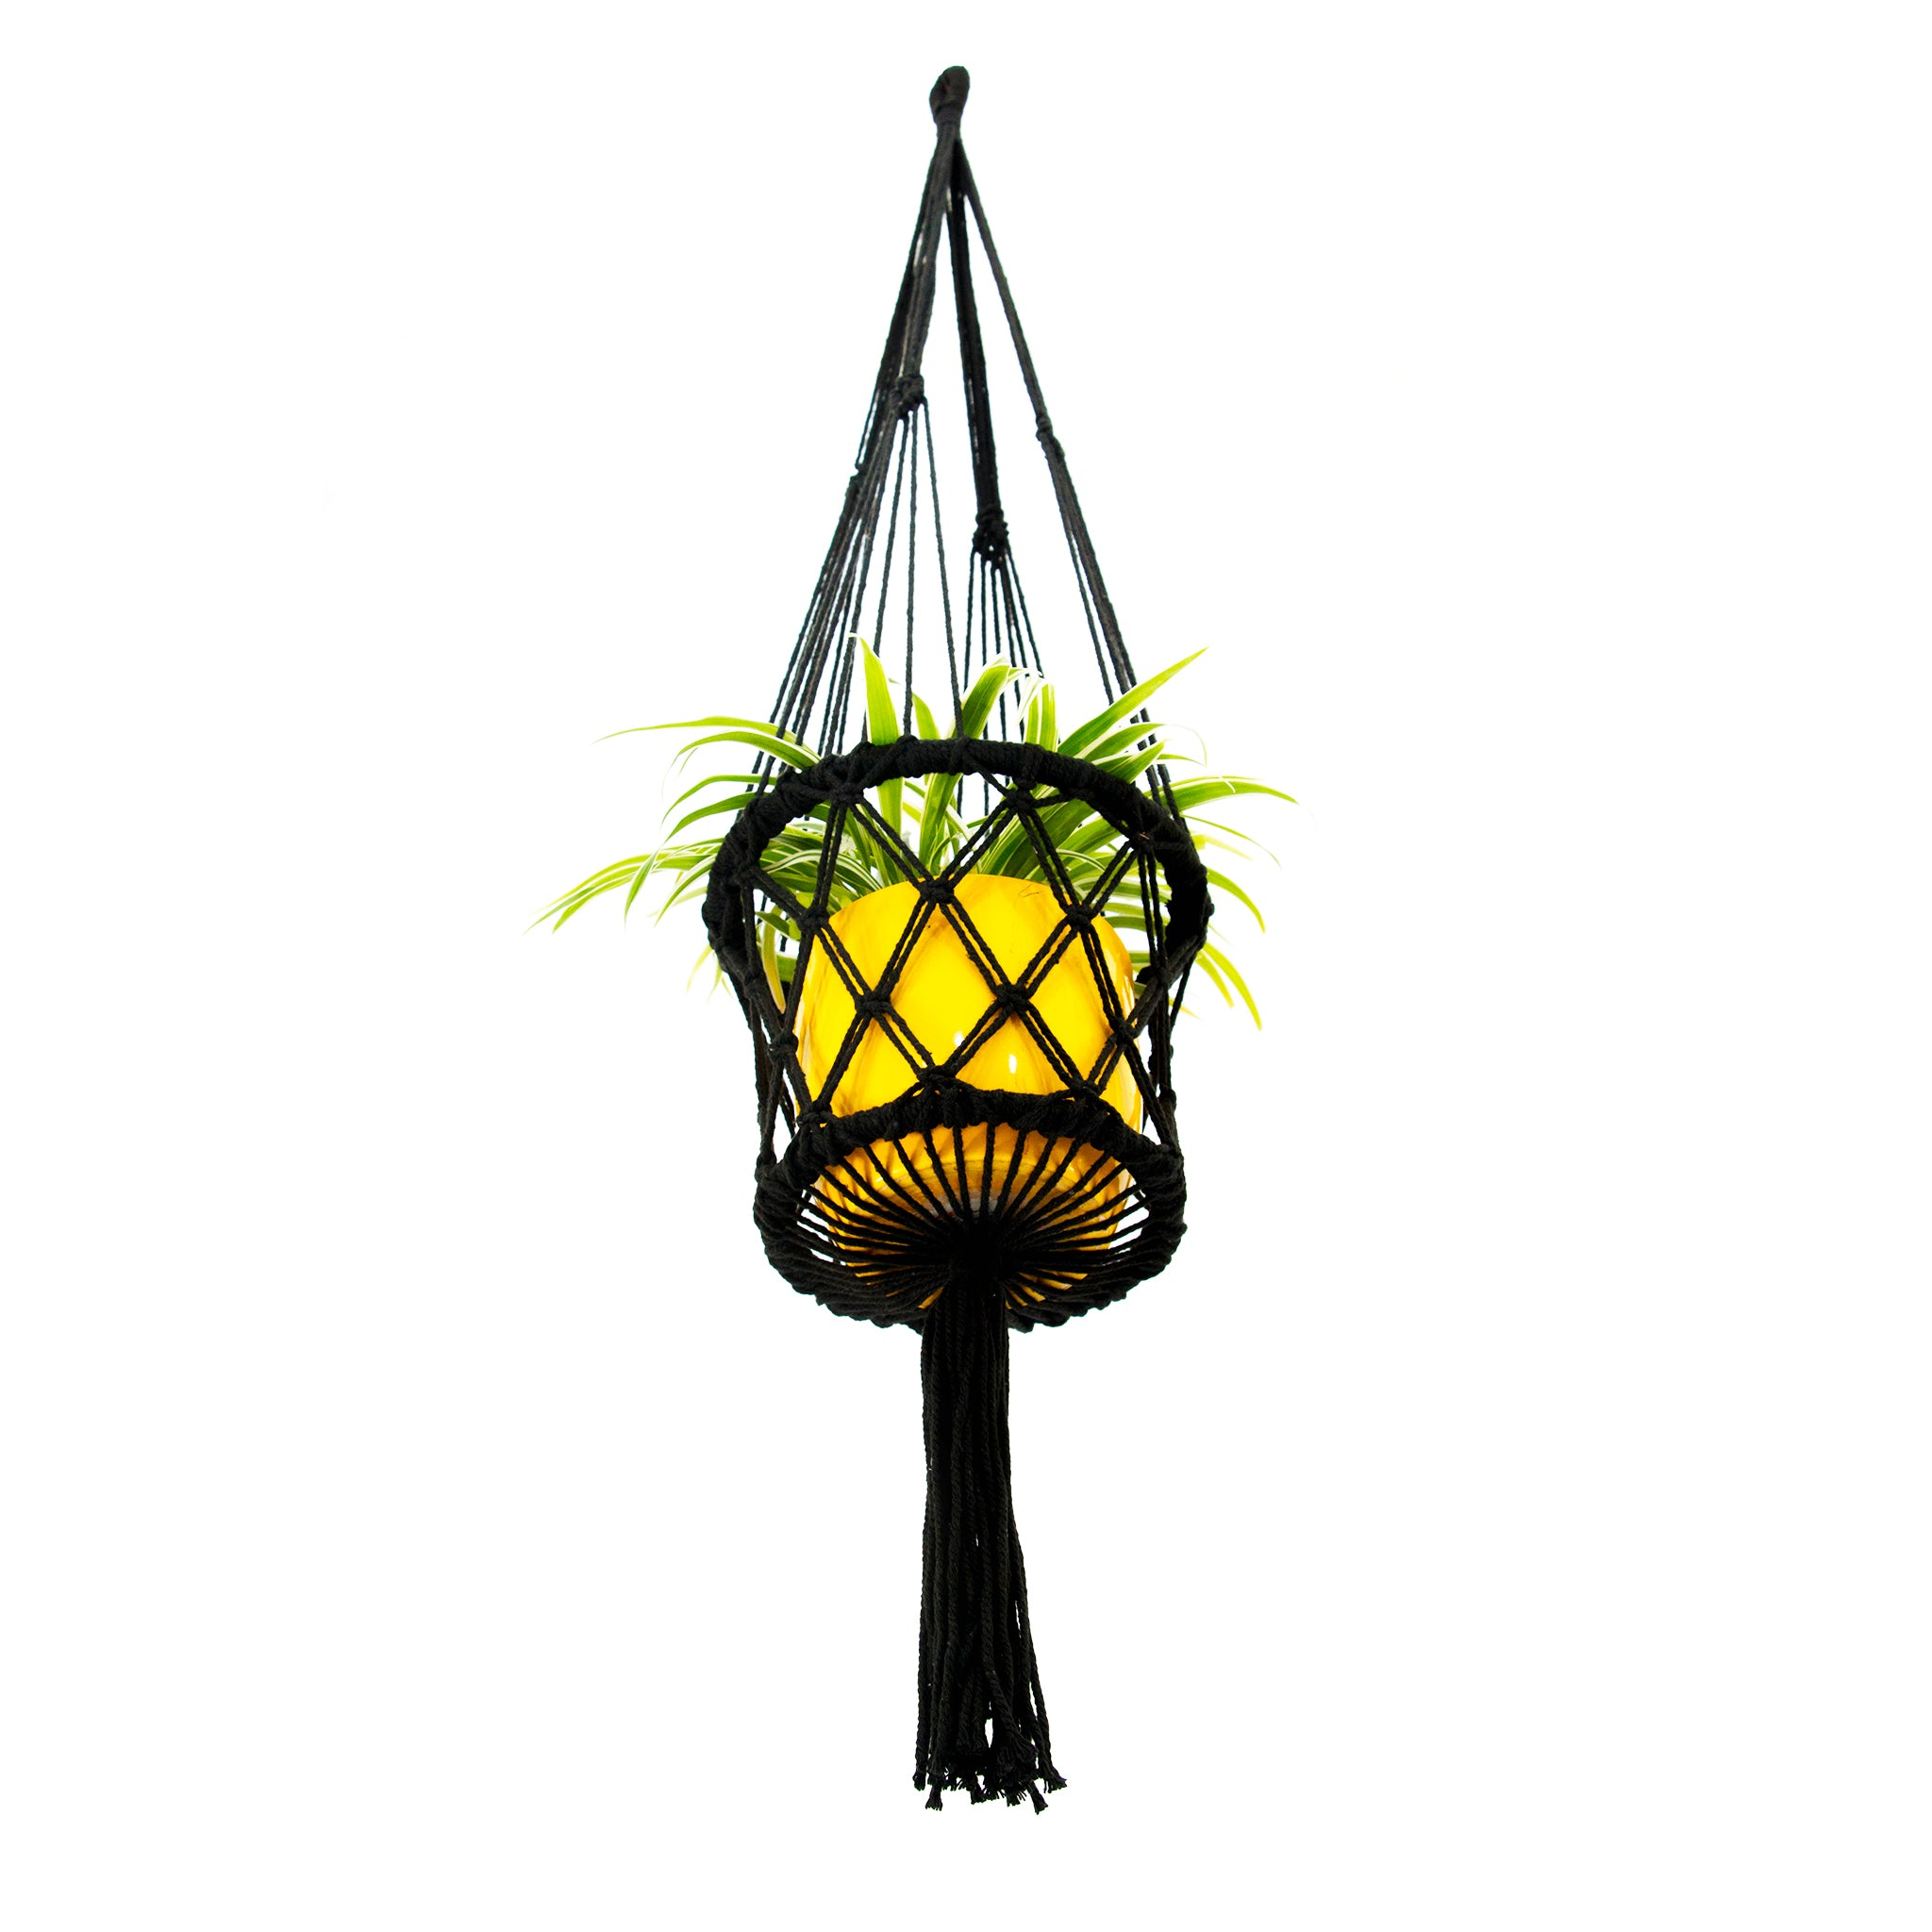 Bottom view of Black Macrame Plant Holder